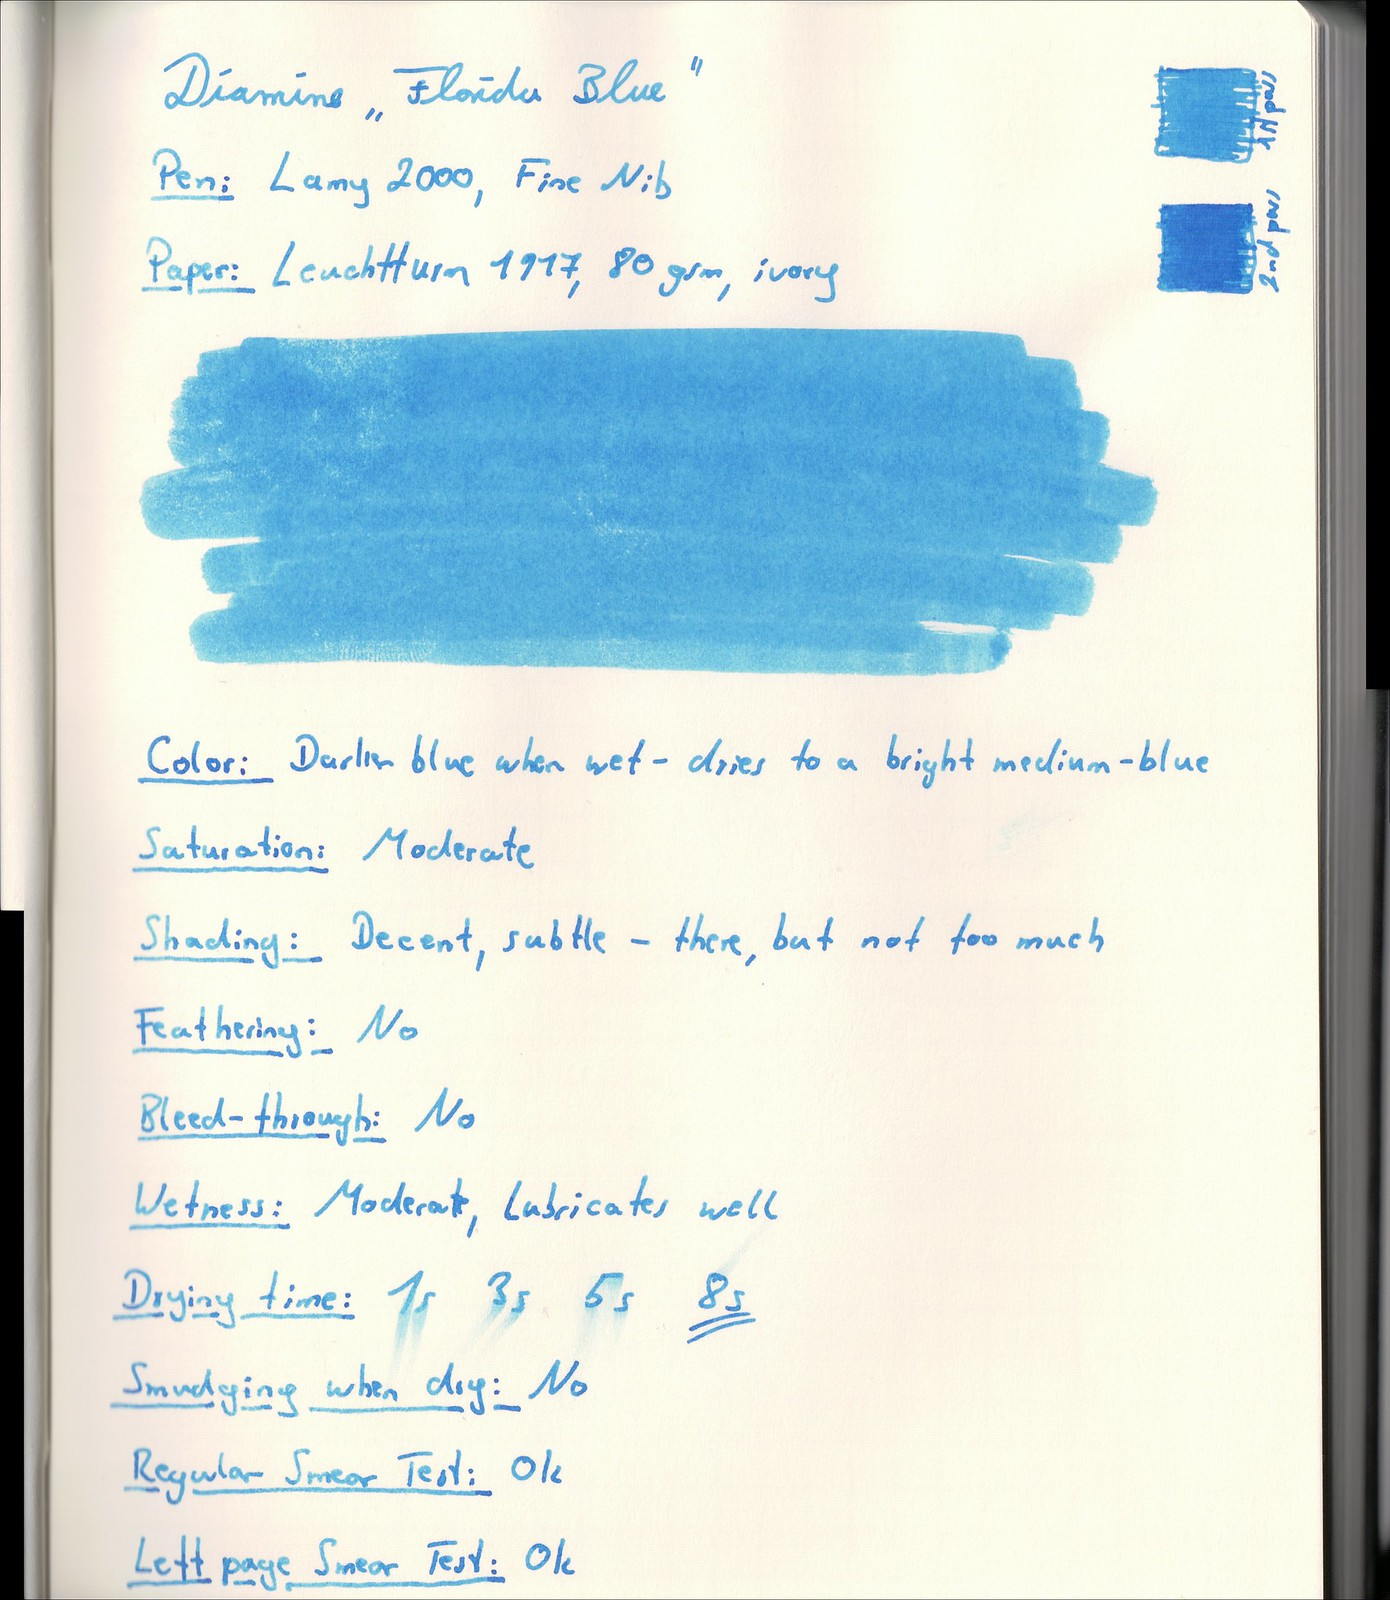 Diamine Florida Blue_LT1917